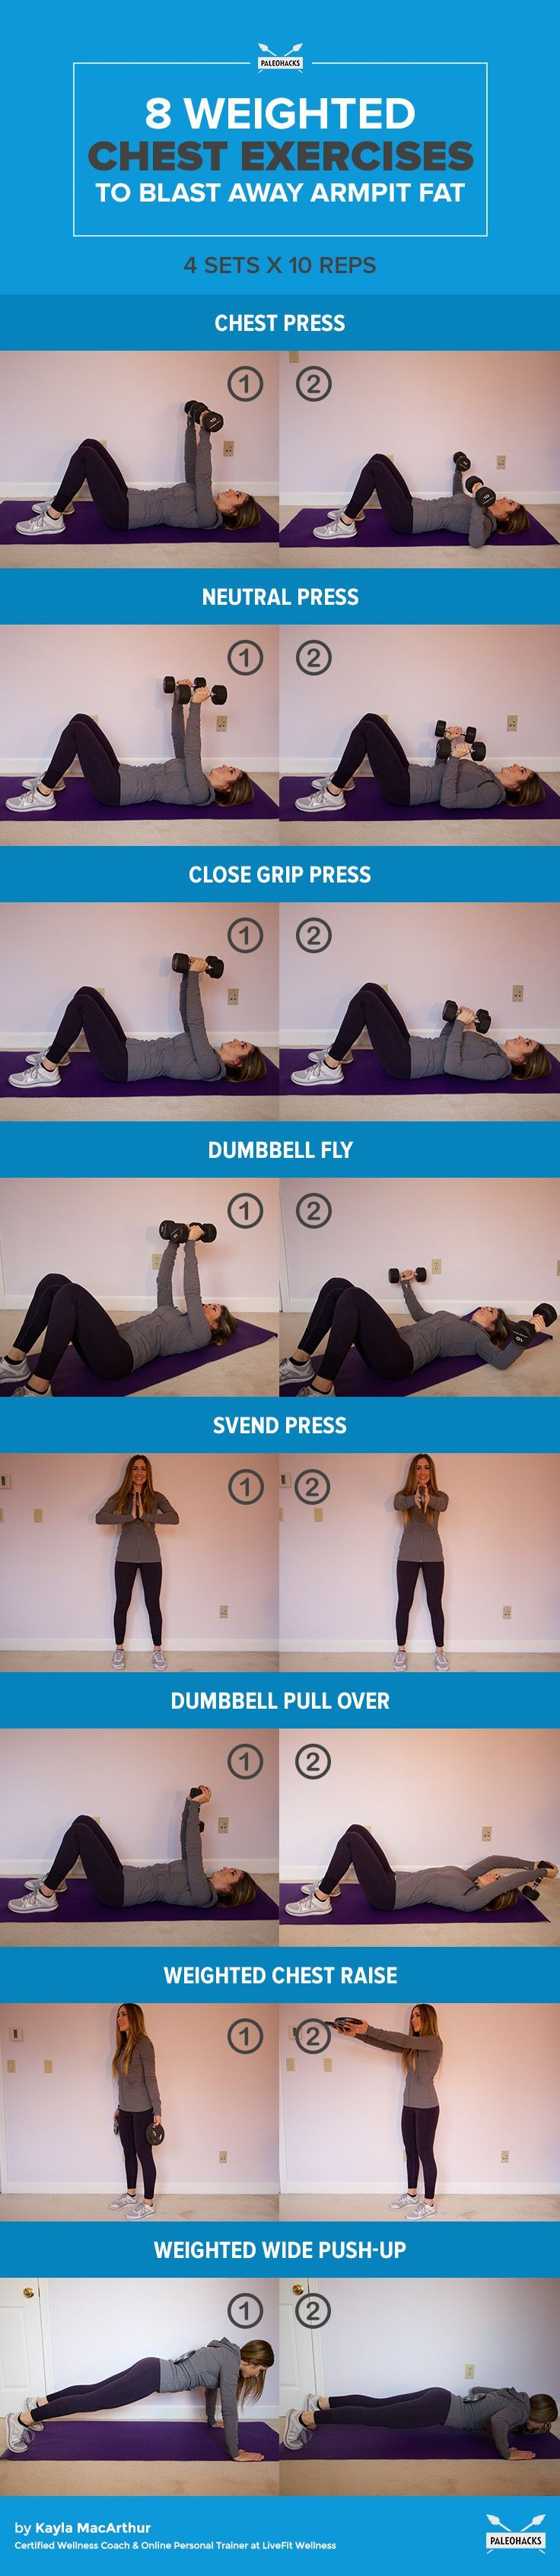 8 Weighted Chest Exercises to Blast Away Armpit FatSkinny Ms.